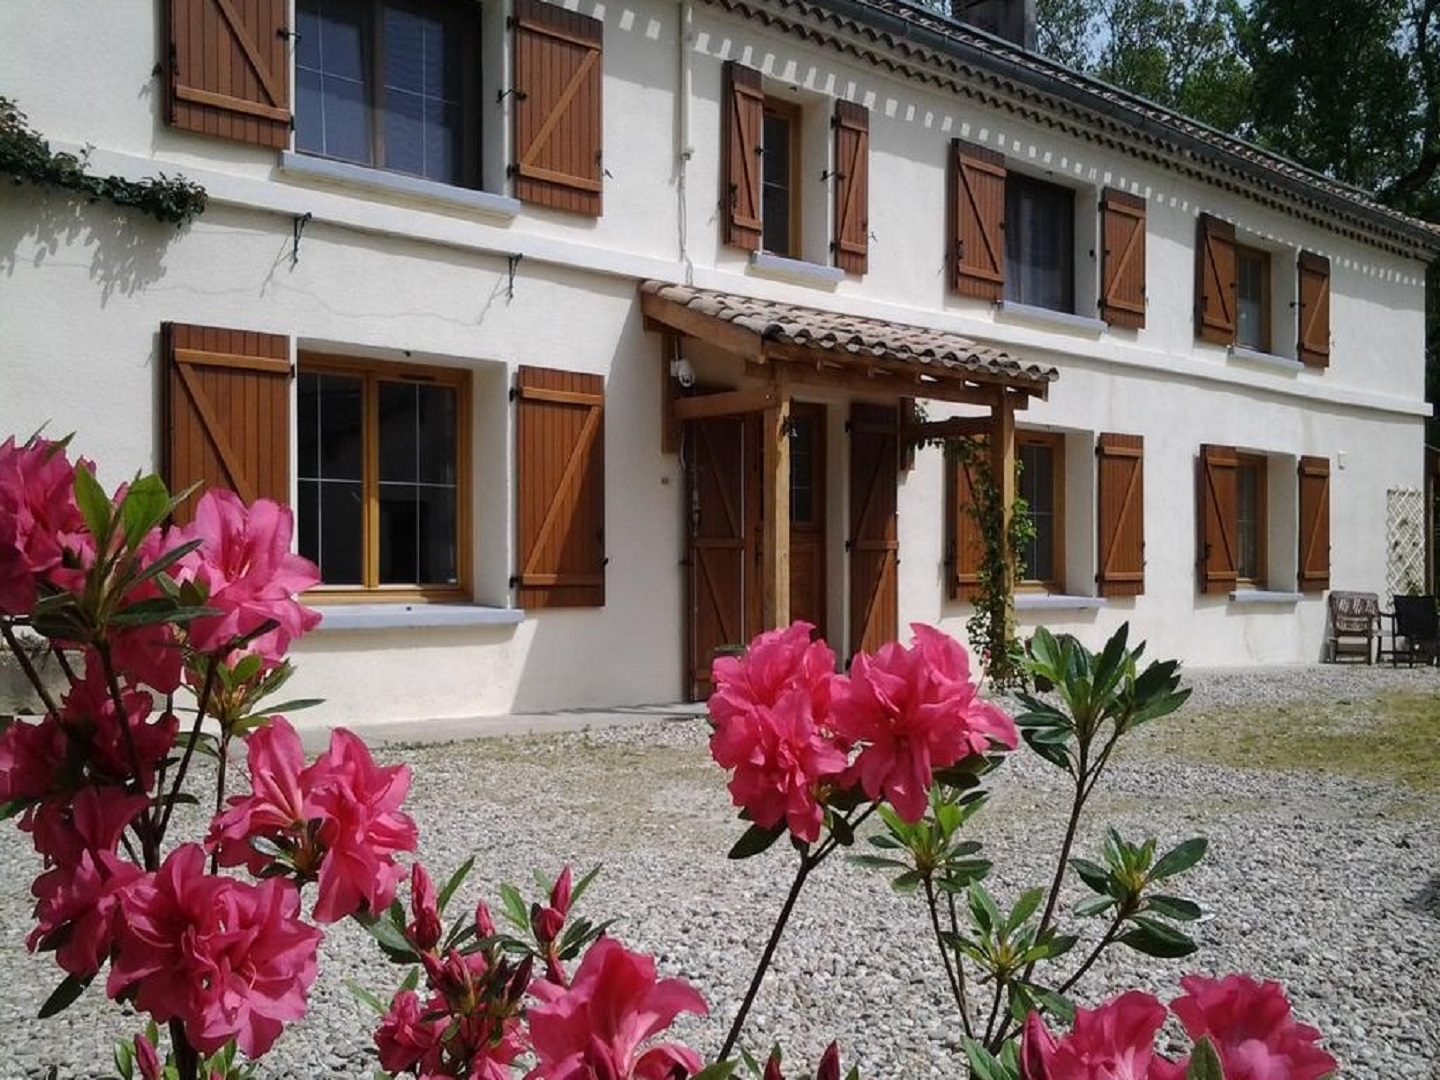 A vase filled with pink flowers in front of a building at La Forestière Chambres et Table d'hôtes.